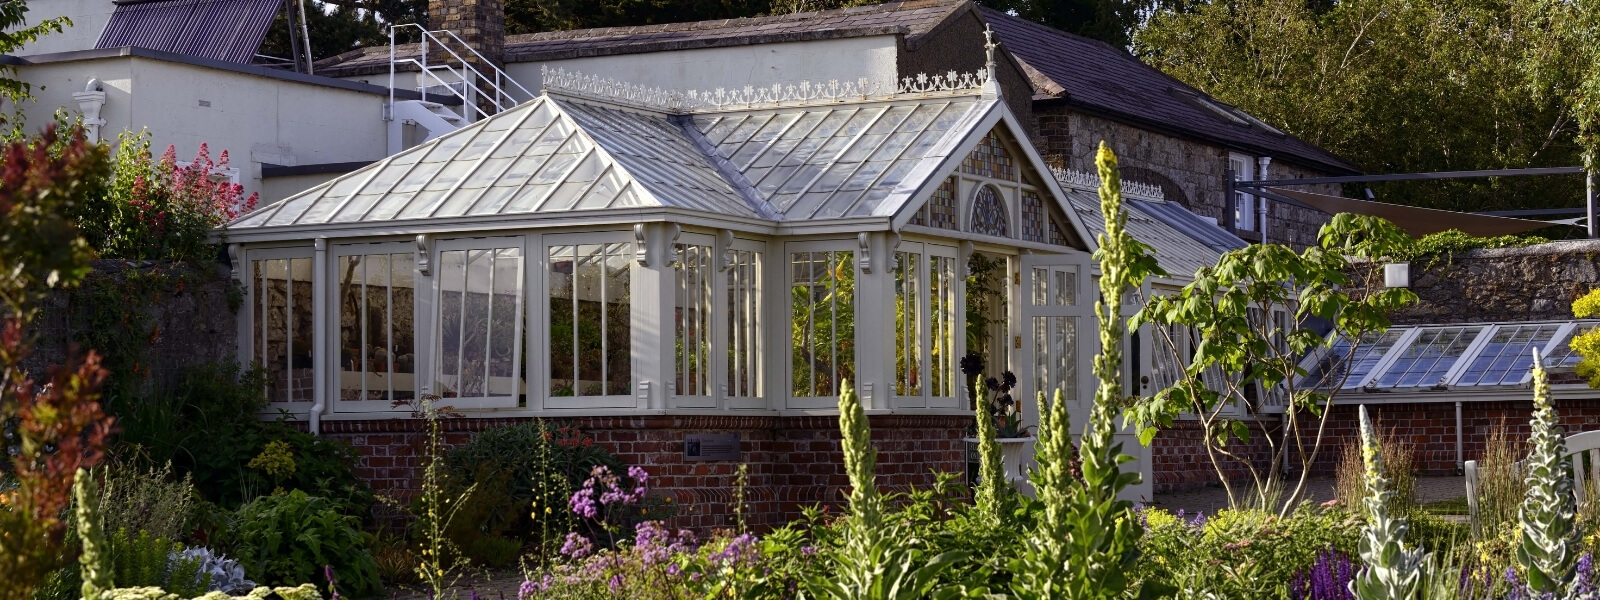 https://www.airfield.ie/wp-content/uploads/2021/08/Glasshouse-at-Airfield-Estate-1.jpg